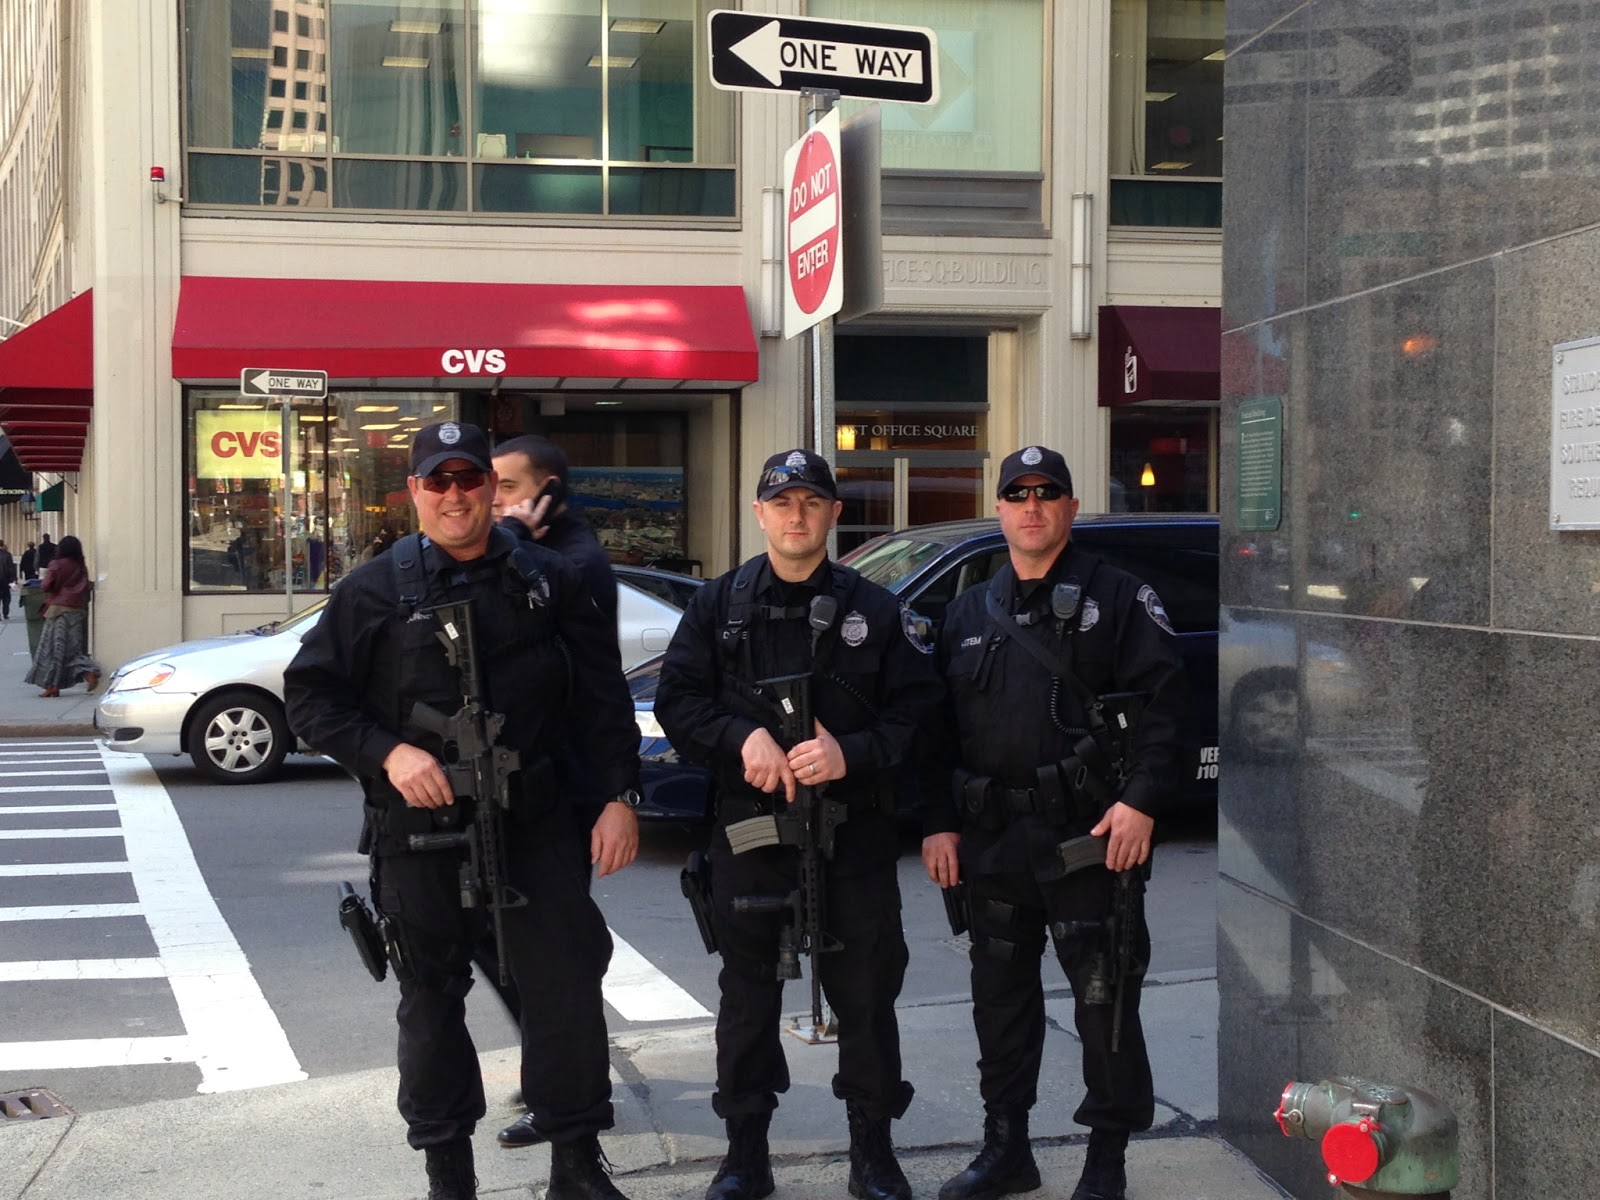 MPD Tactical Officers in Boston - Methuen Police News